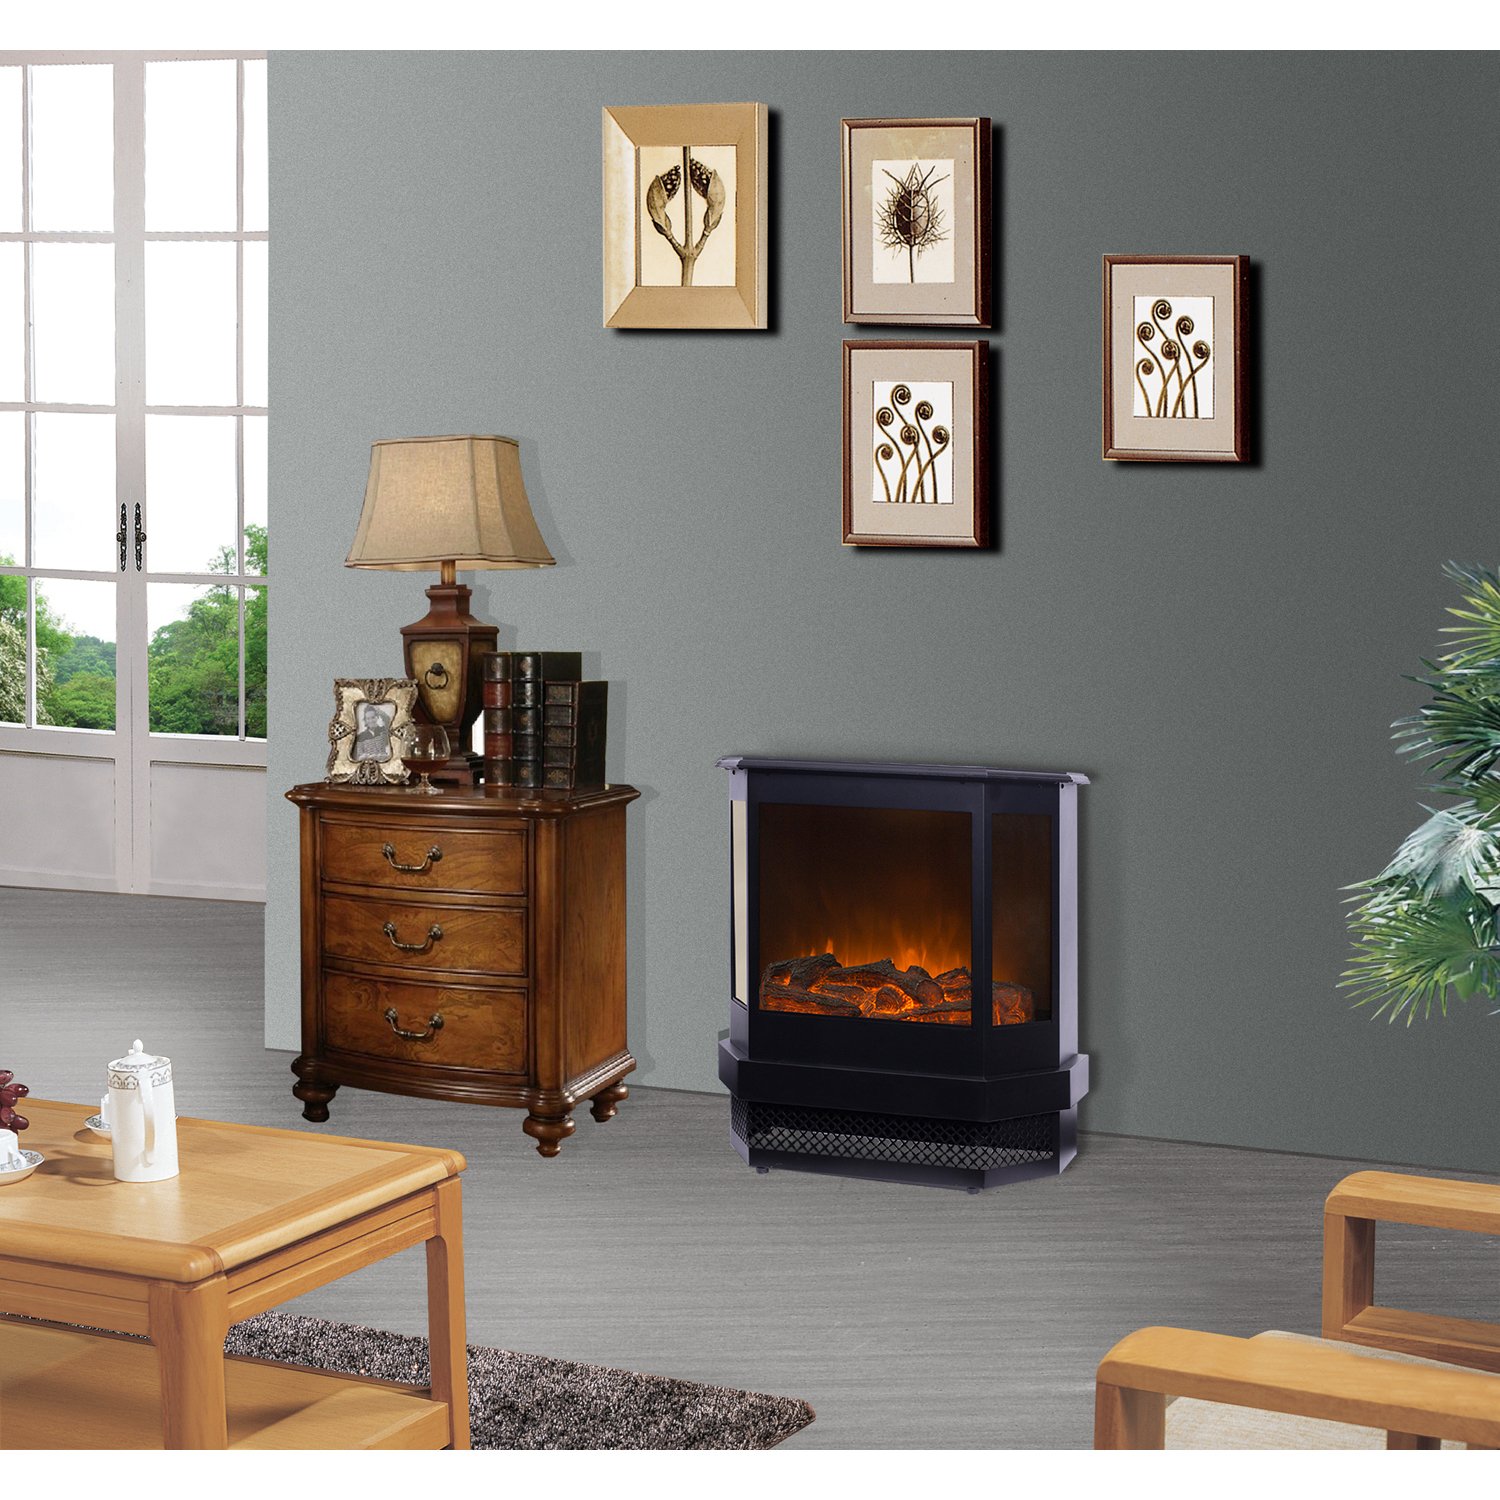 Details About Decor Flame Electric Stove Heater Home Improvement Heating Cooling Living Room